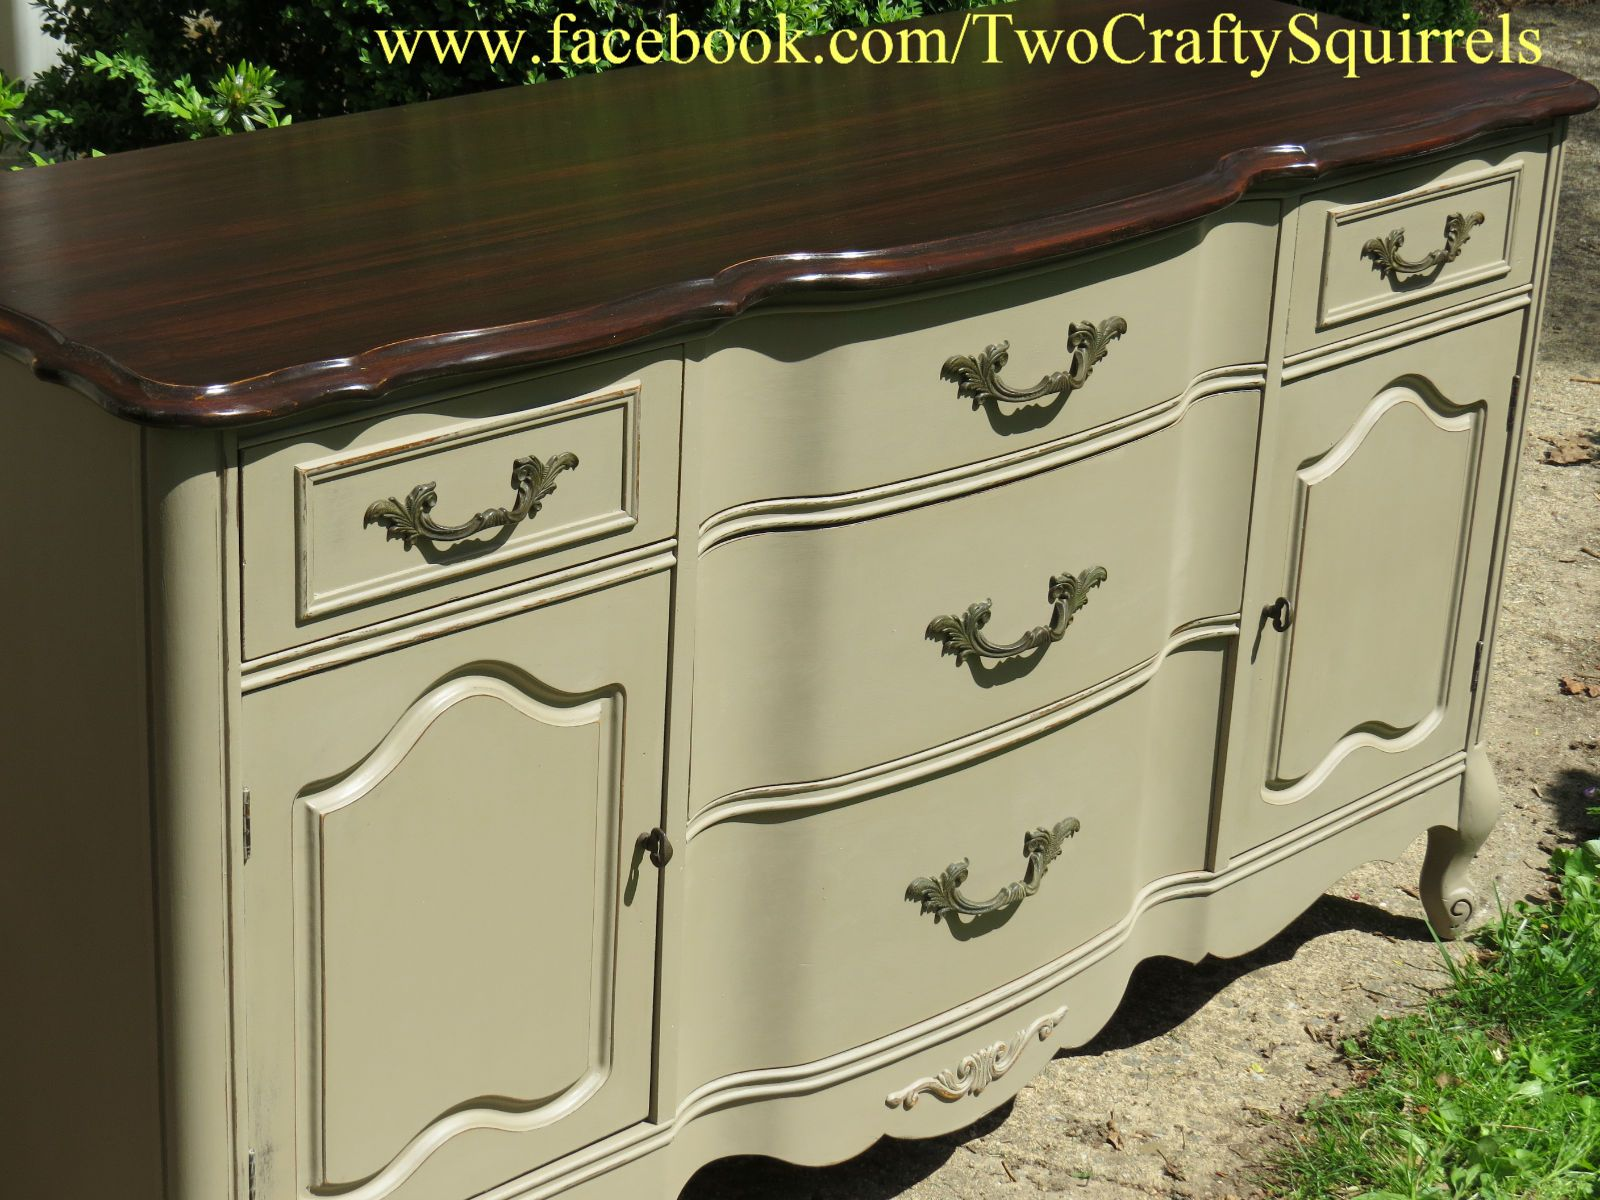 Purchase annie sloan chalk paint - Annie Sloan Chalk Paint Coco And General Finishes Java Gel Stain General Finishes Gel Stains And All Chalk Paint Products Can Be Purchased At Simpler